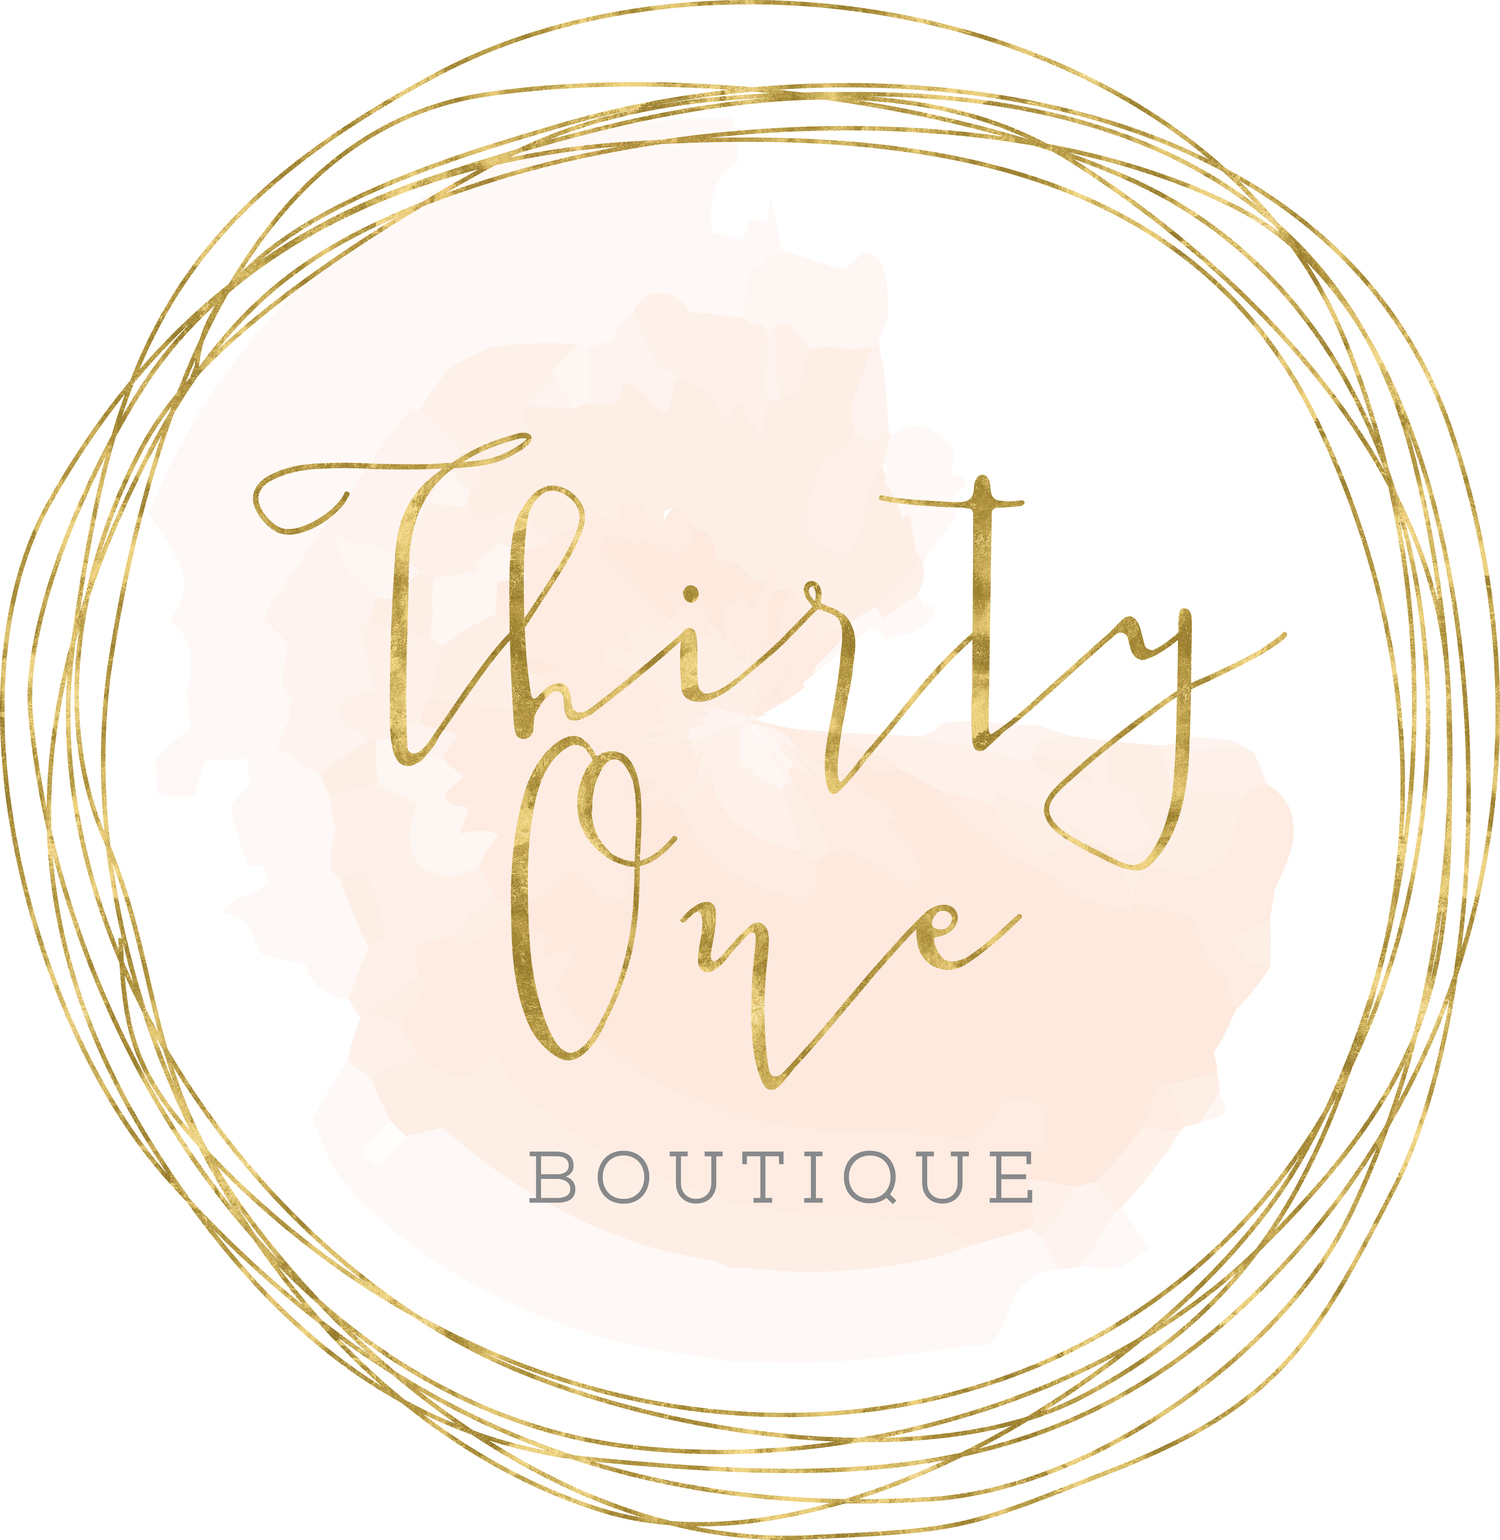 ThirtyOne Boutique